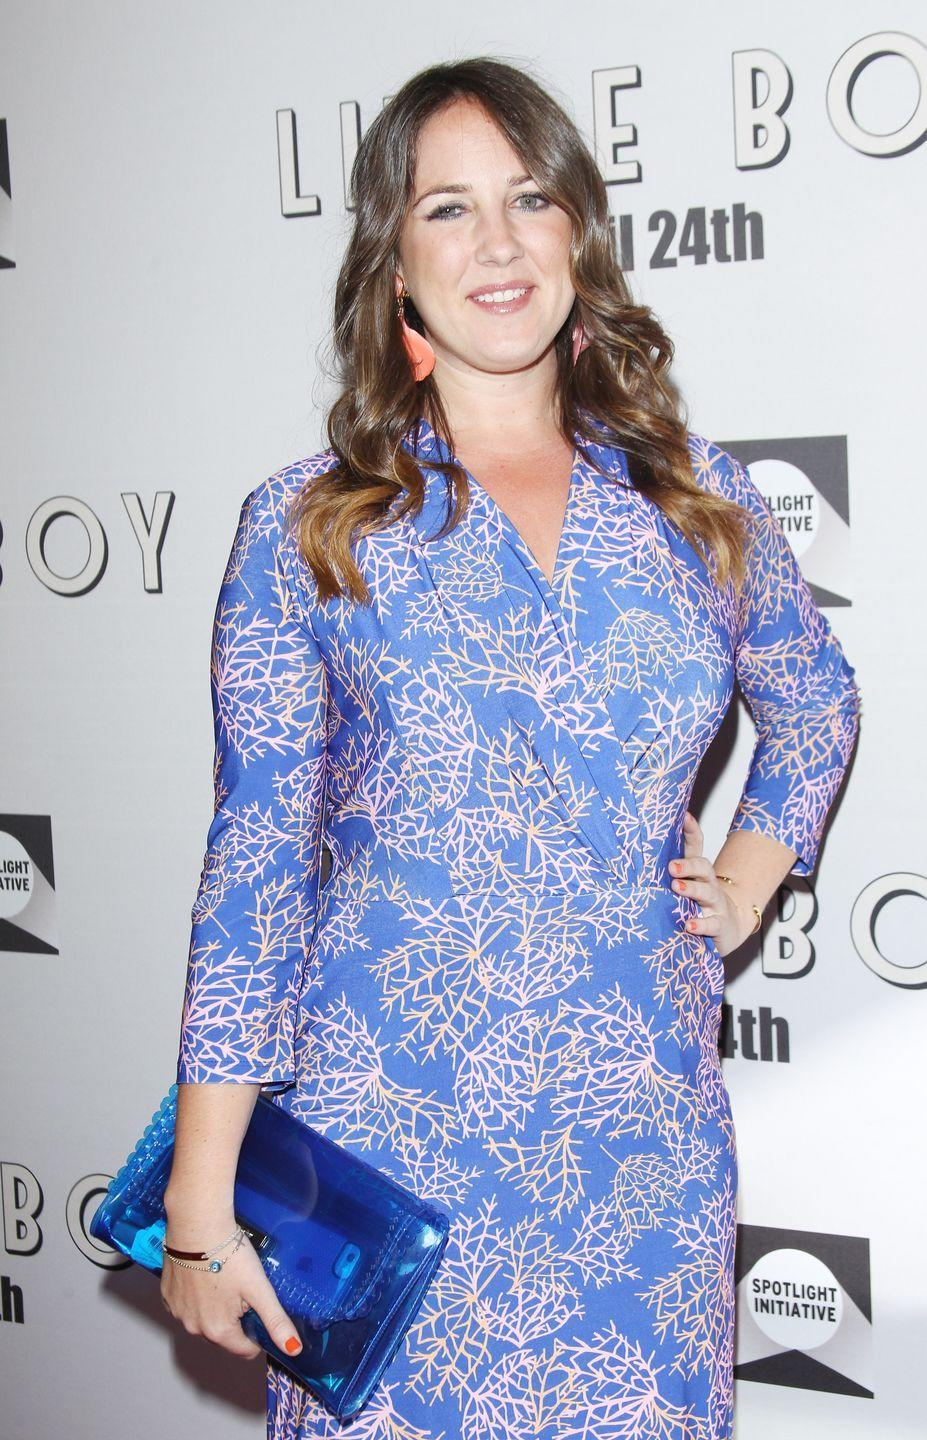 <p>Like her brother, Theodora was educated in the U.S., studying theater at Brown University. In 2010, Theodora moved to L.A. to pursue a career in acting and in 2011, made her TV debut in <em>The Bold and The Beautiful</em>, where she would play secretary Alison Montgomery until 2016.</p>